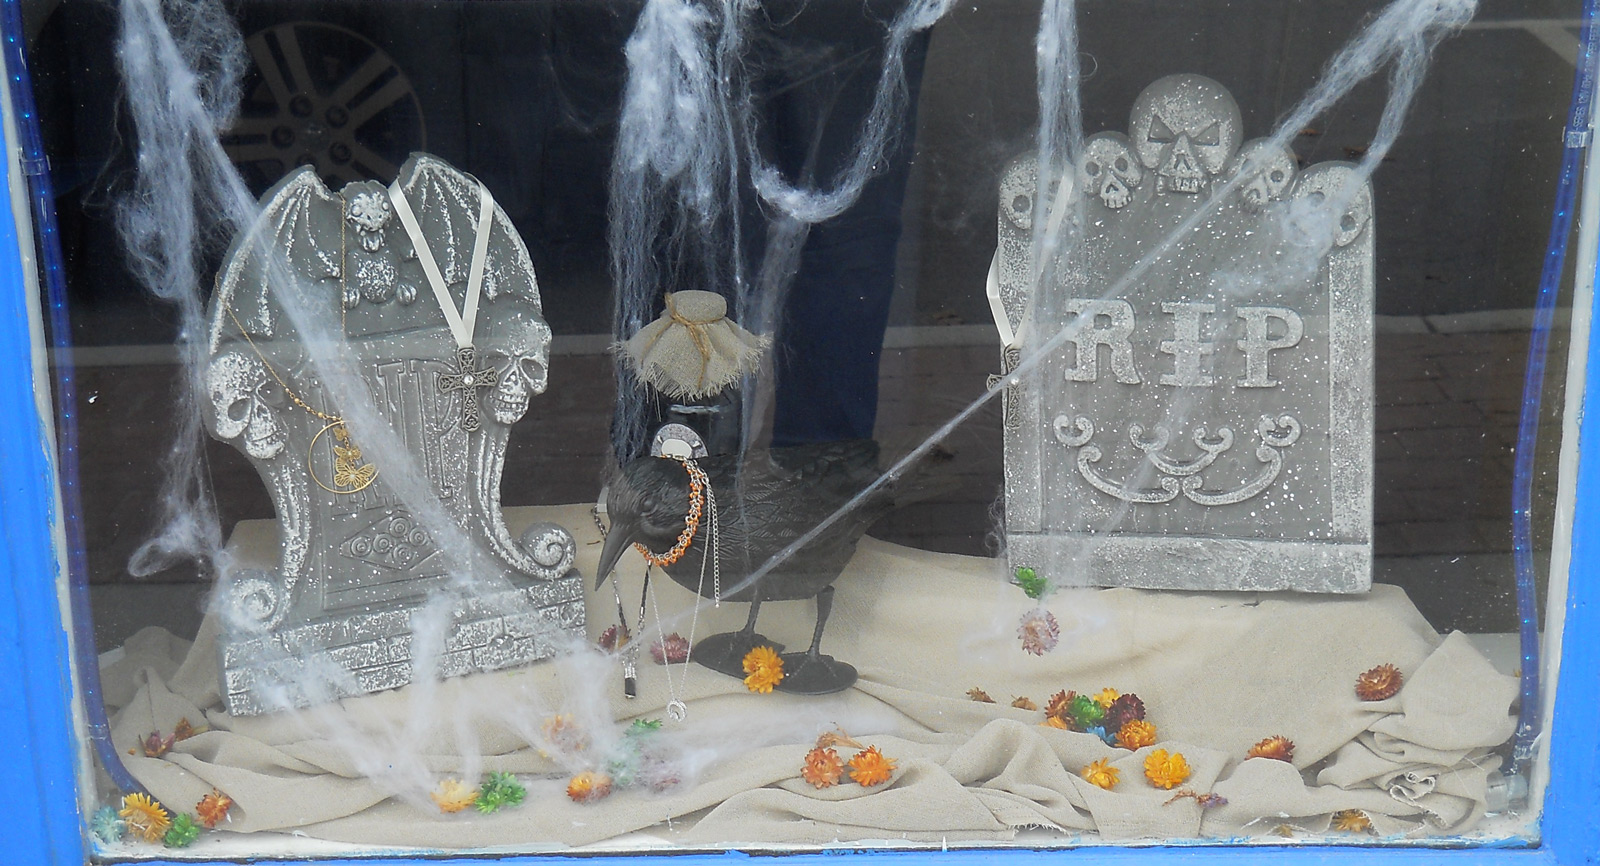 Crypts constructed in a chic way, a raven and fog made out of cotton put on the Halloween window display.